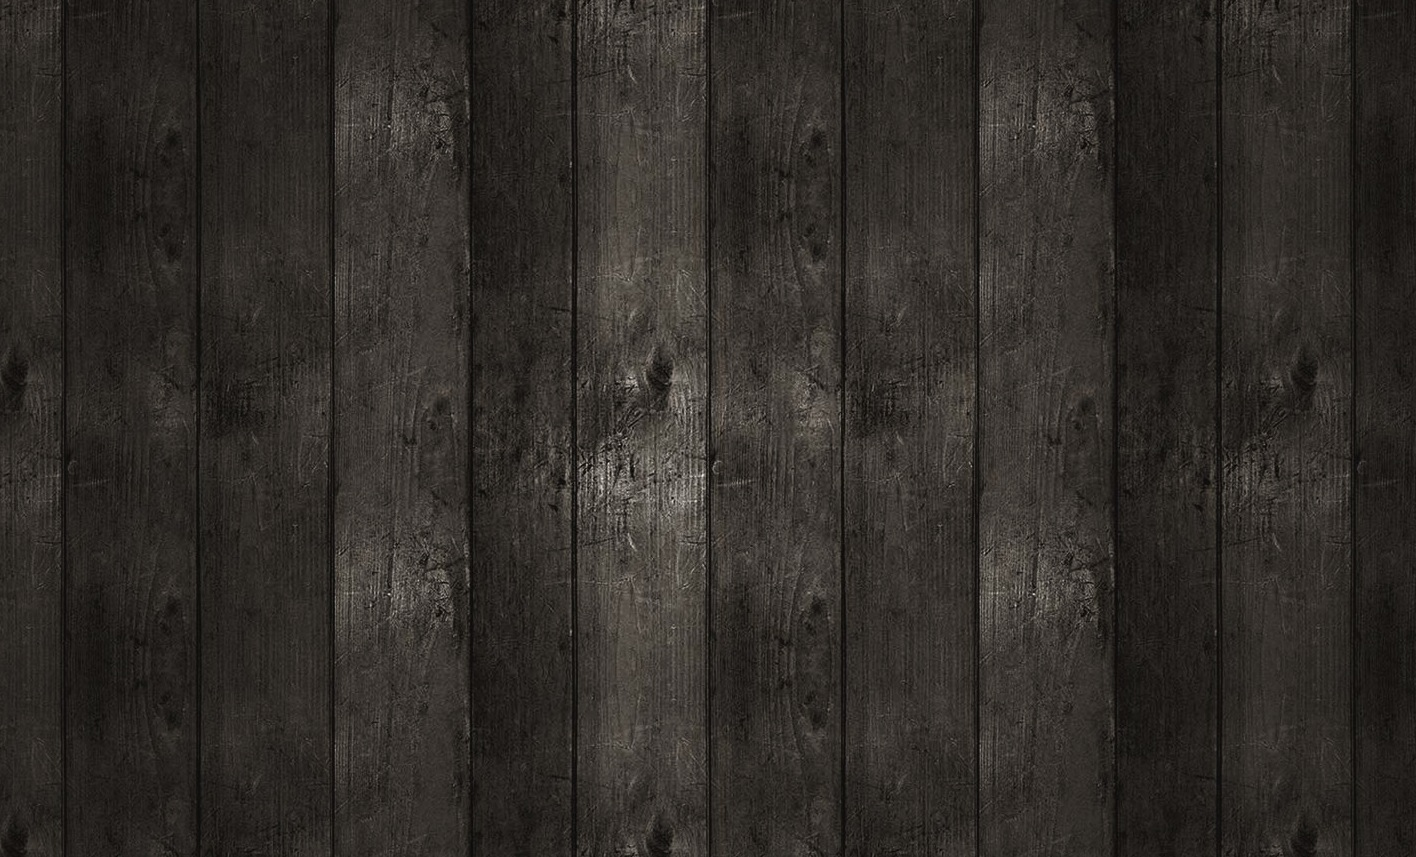 Wallpapers rustic wood backgrounds for gt brown wood - Rustic background ...